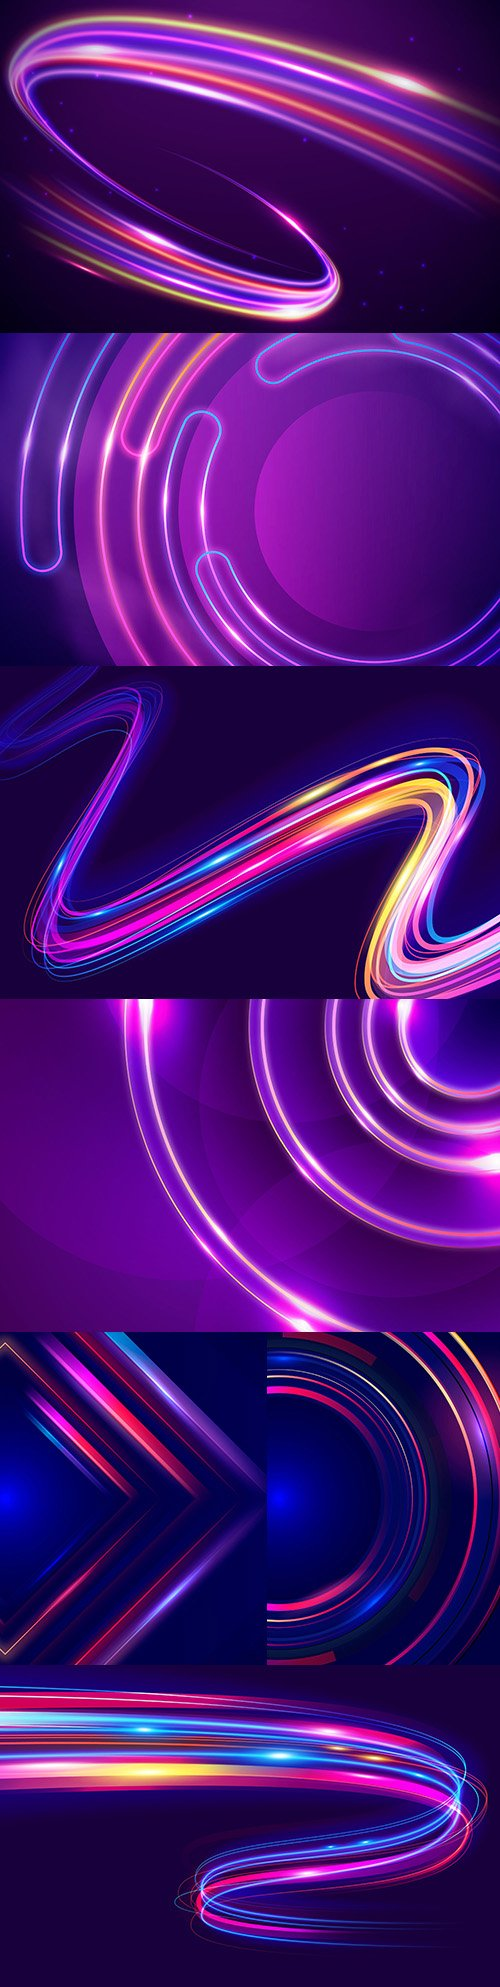 Abstract style neon lights design background